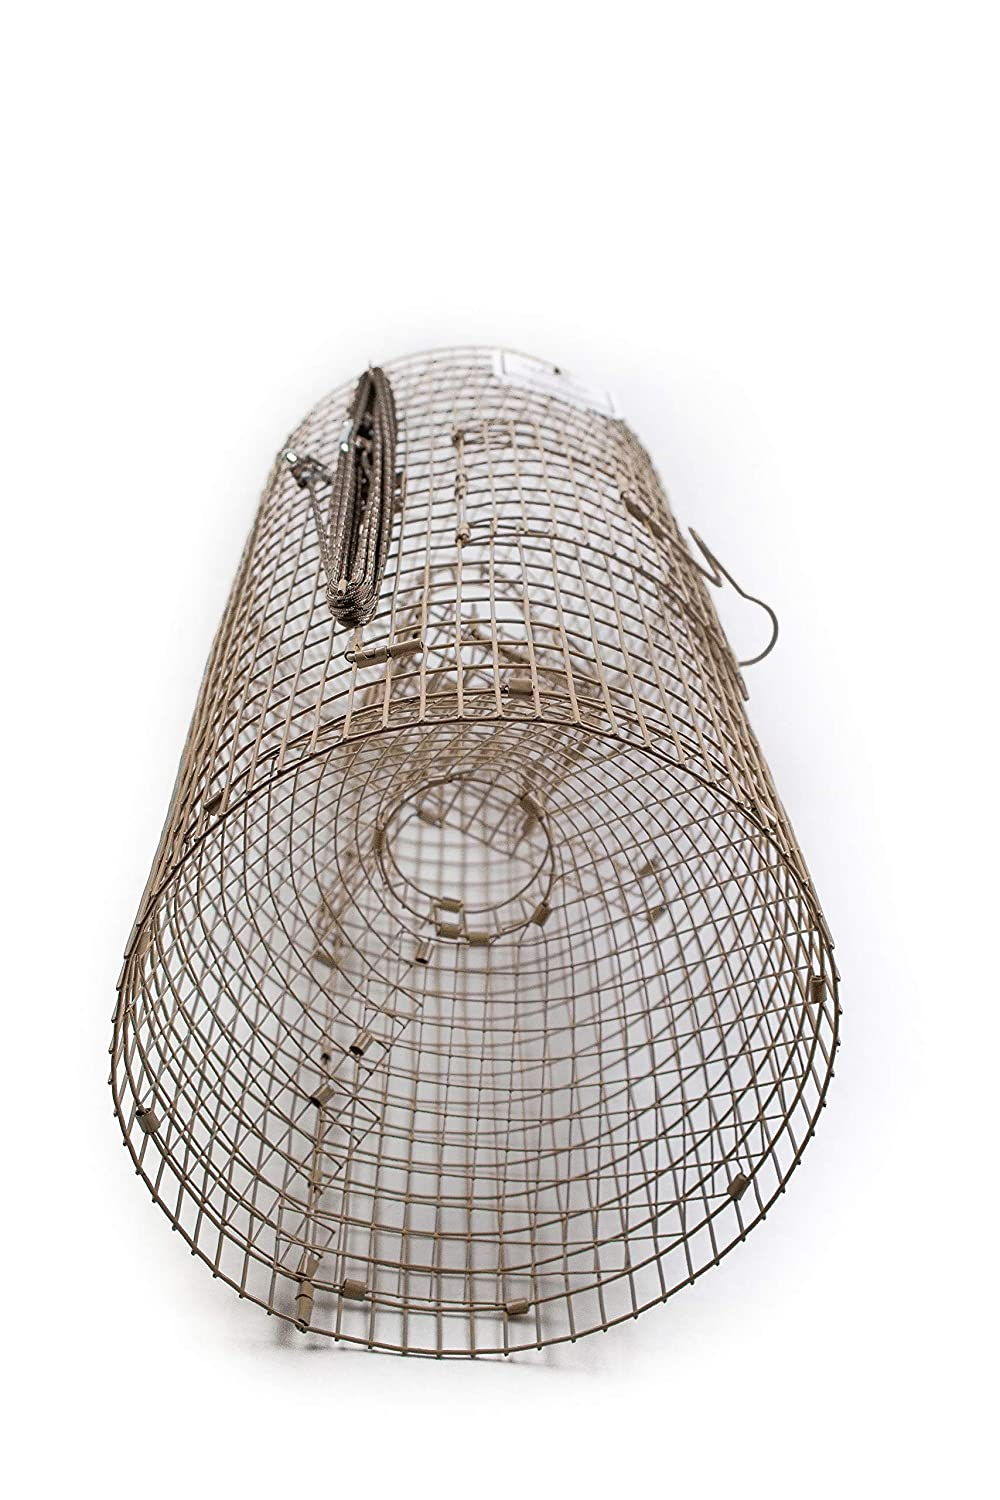 Crayster The Snake River Cylinder Crawfish Trap